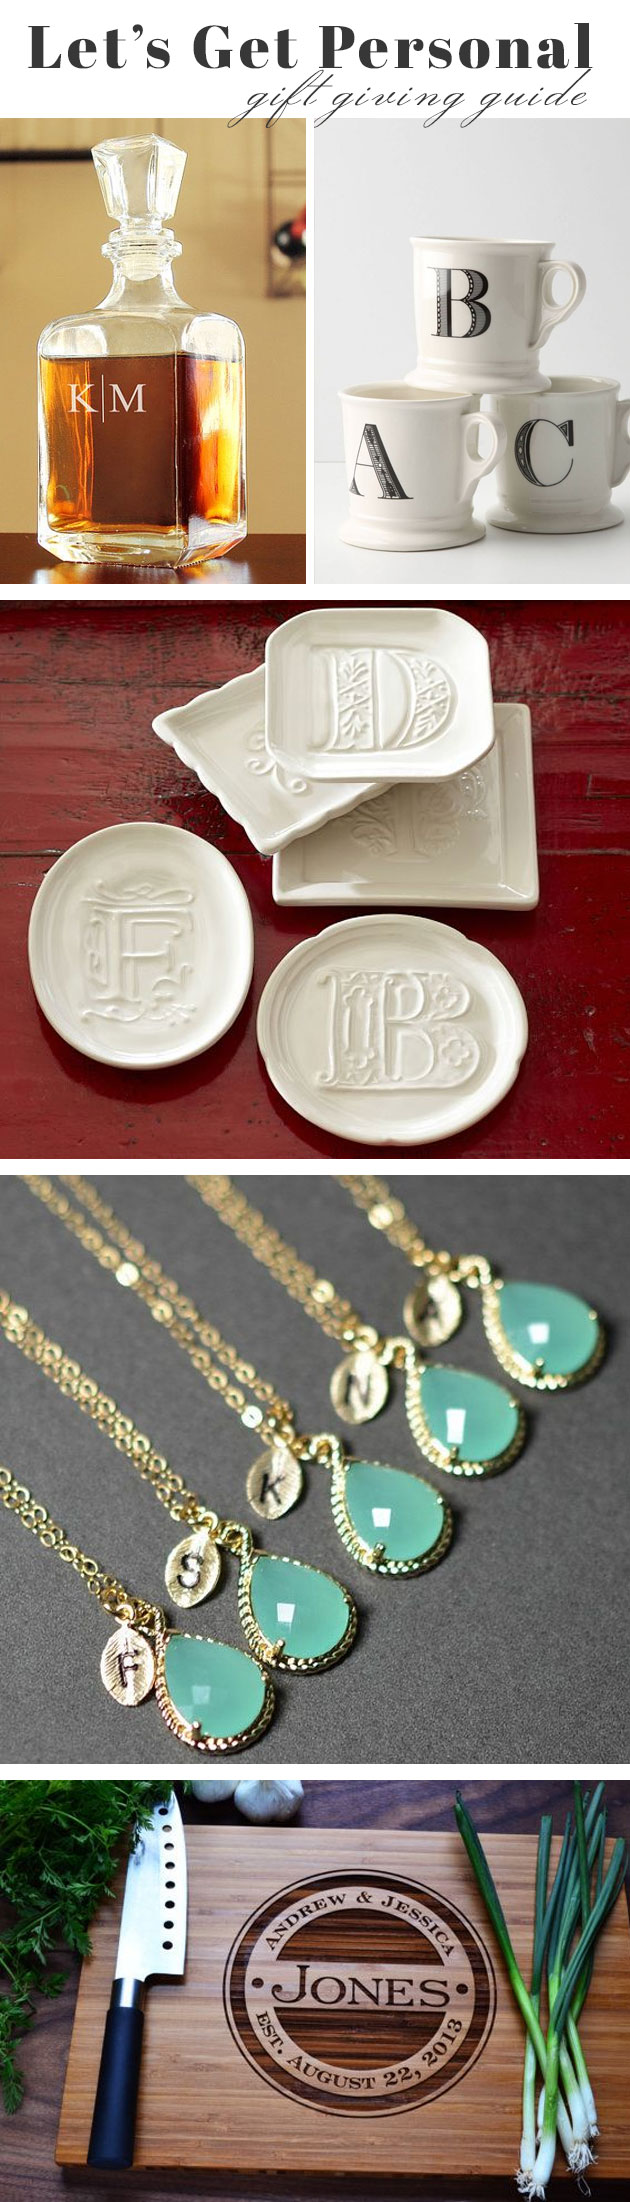 Personalized Gifts for Under $40